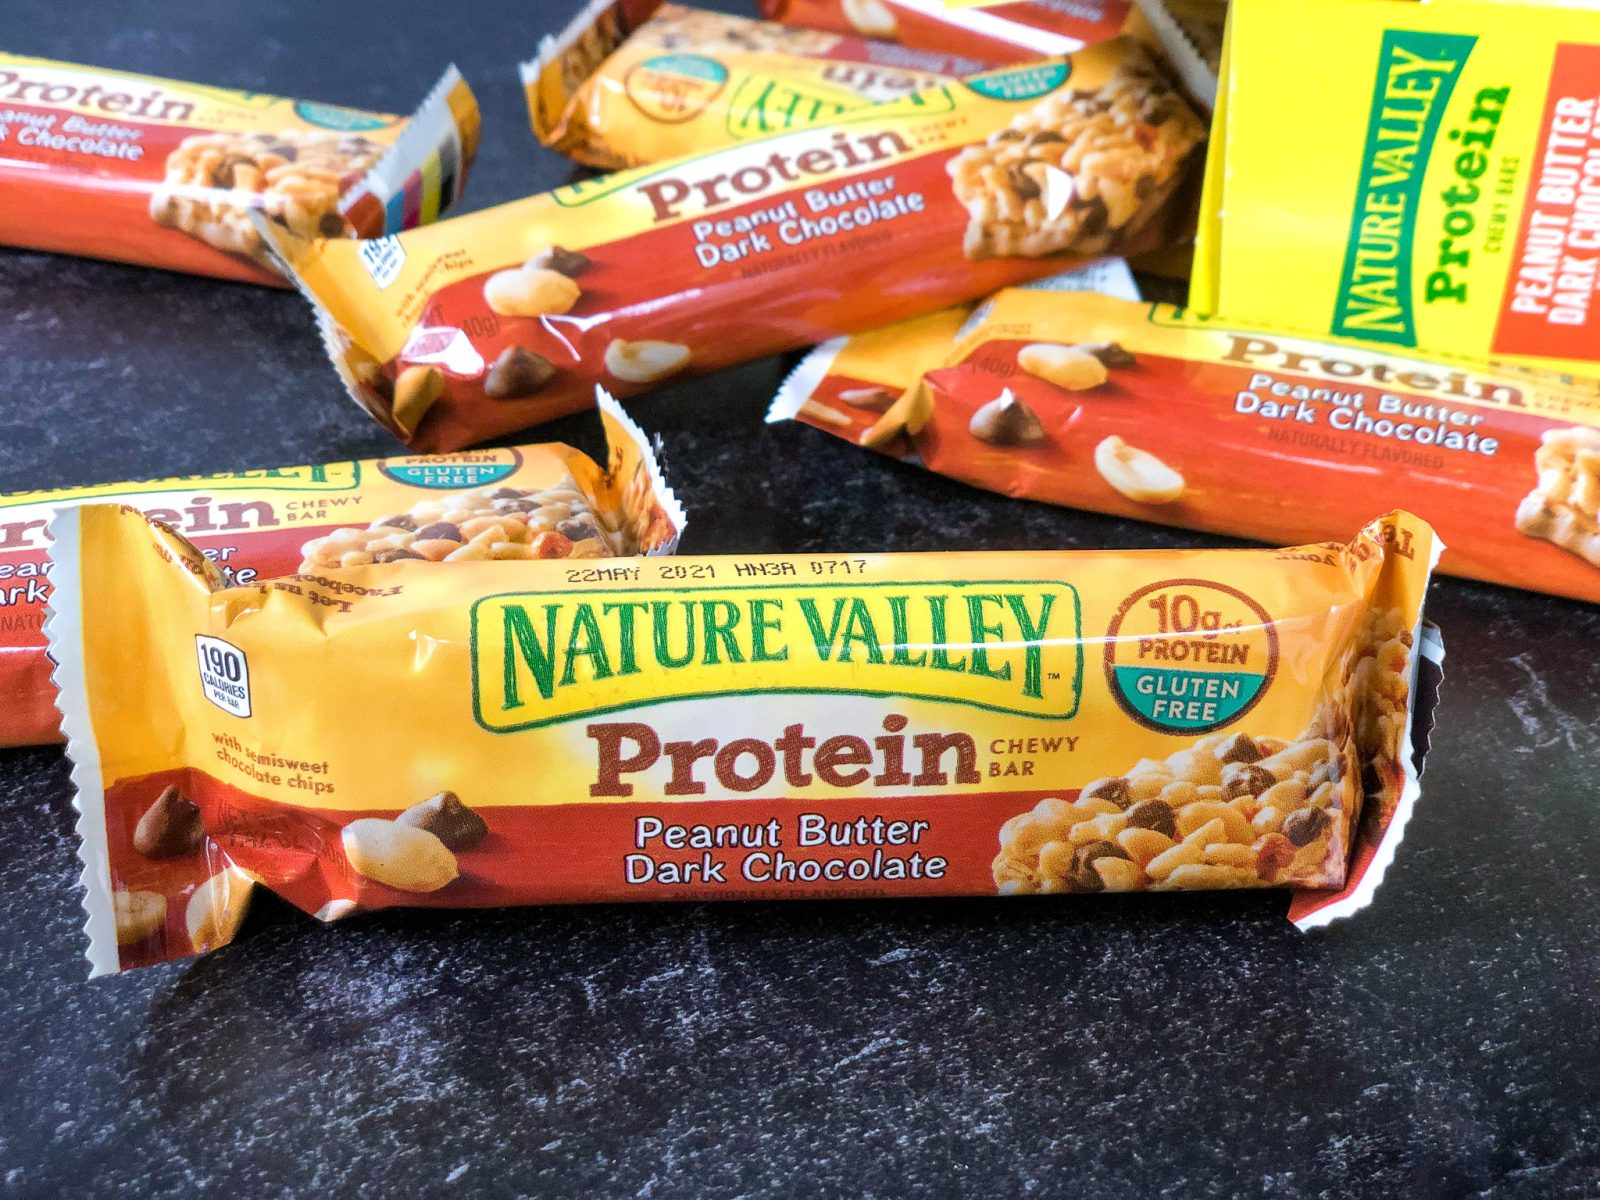 Value Size Boxes Of Nature Valley & Fiber One Bars As Low As $2.33 At Publix on I Heart Publix